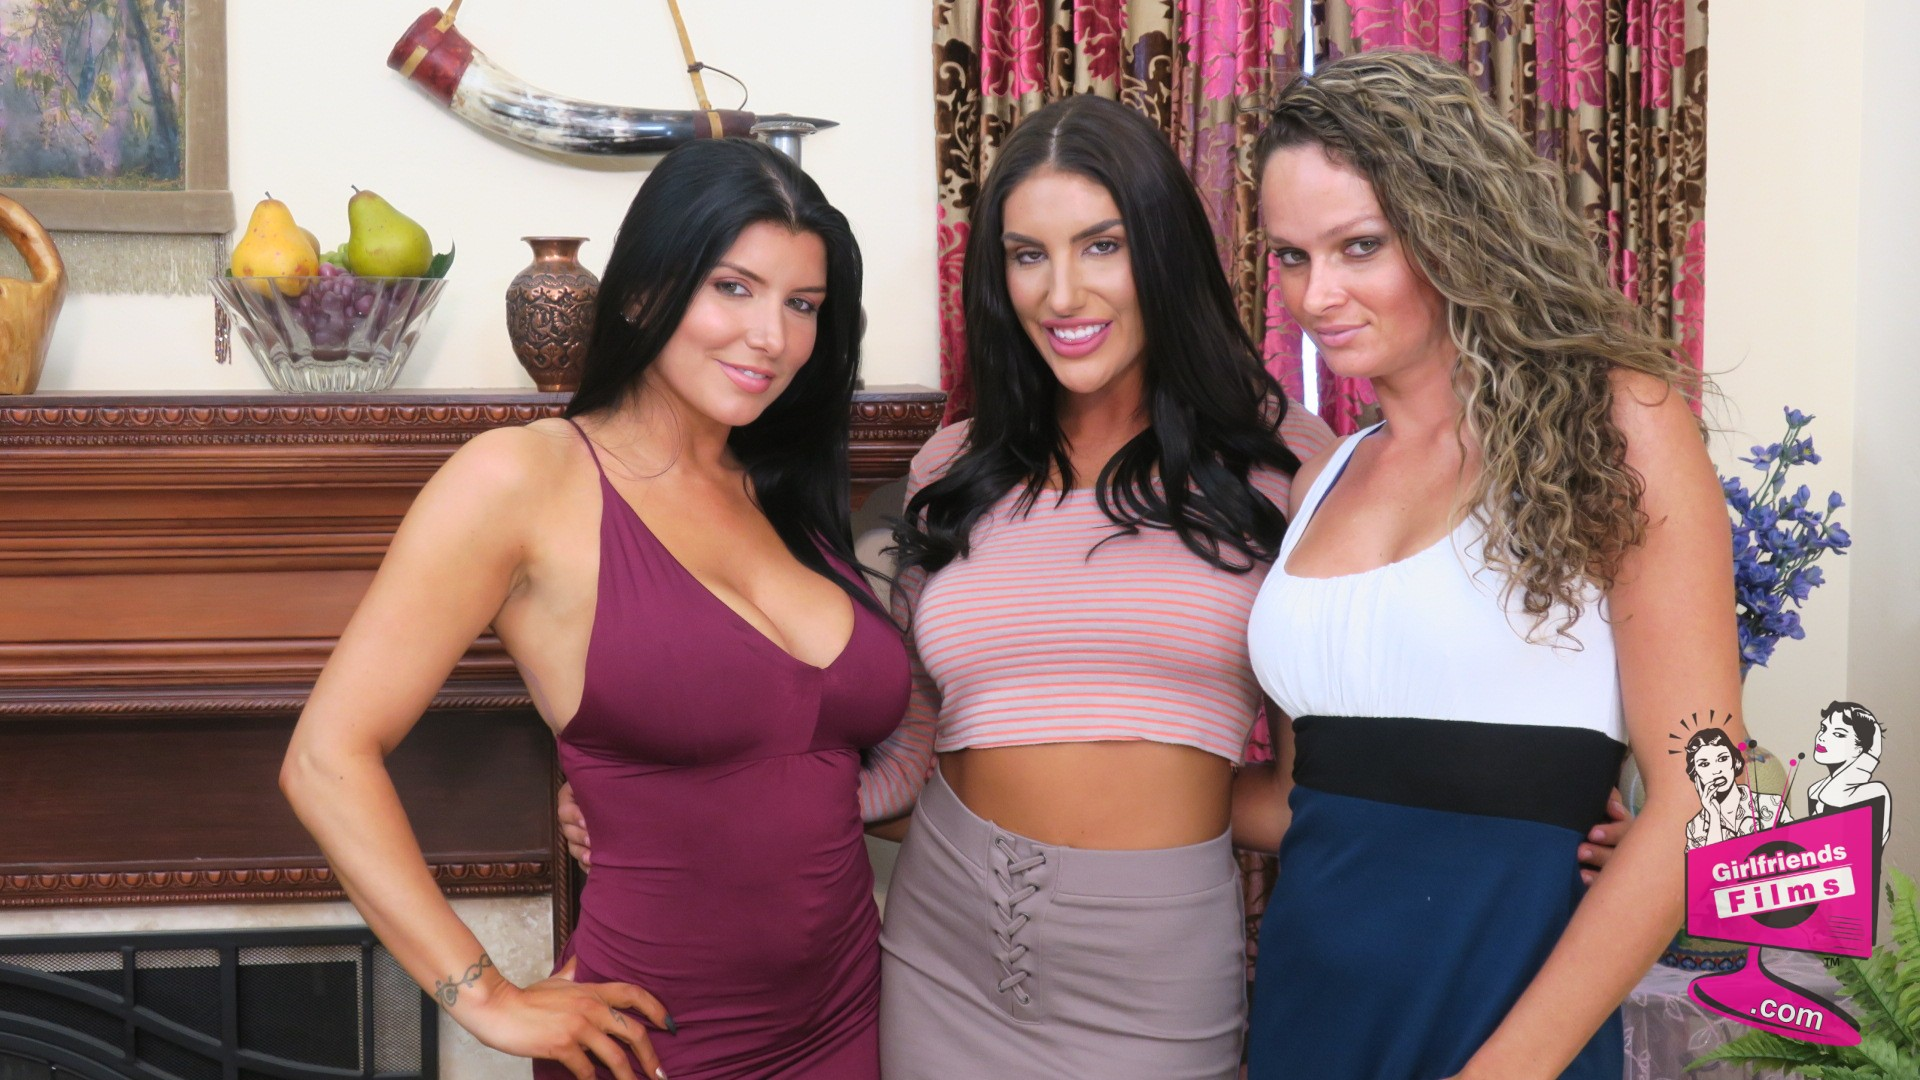 Girlfriends Films Official - Model page